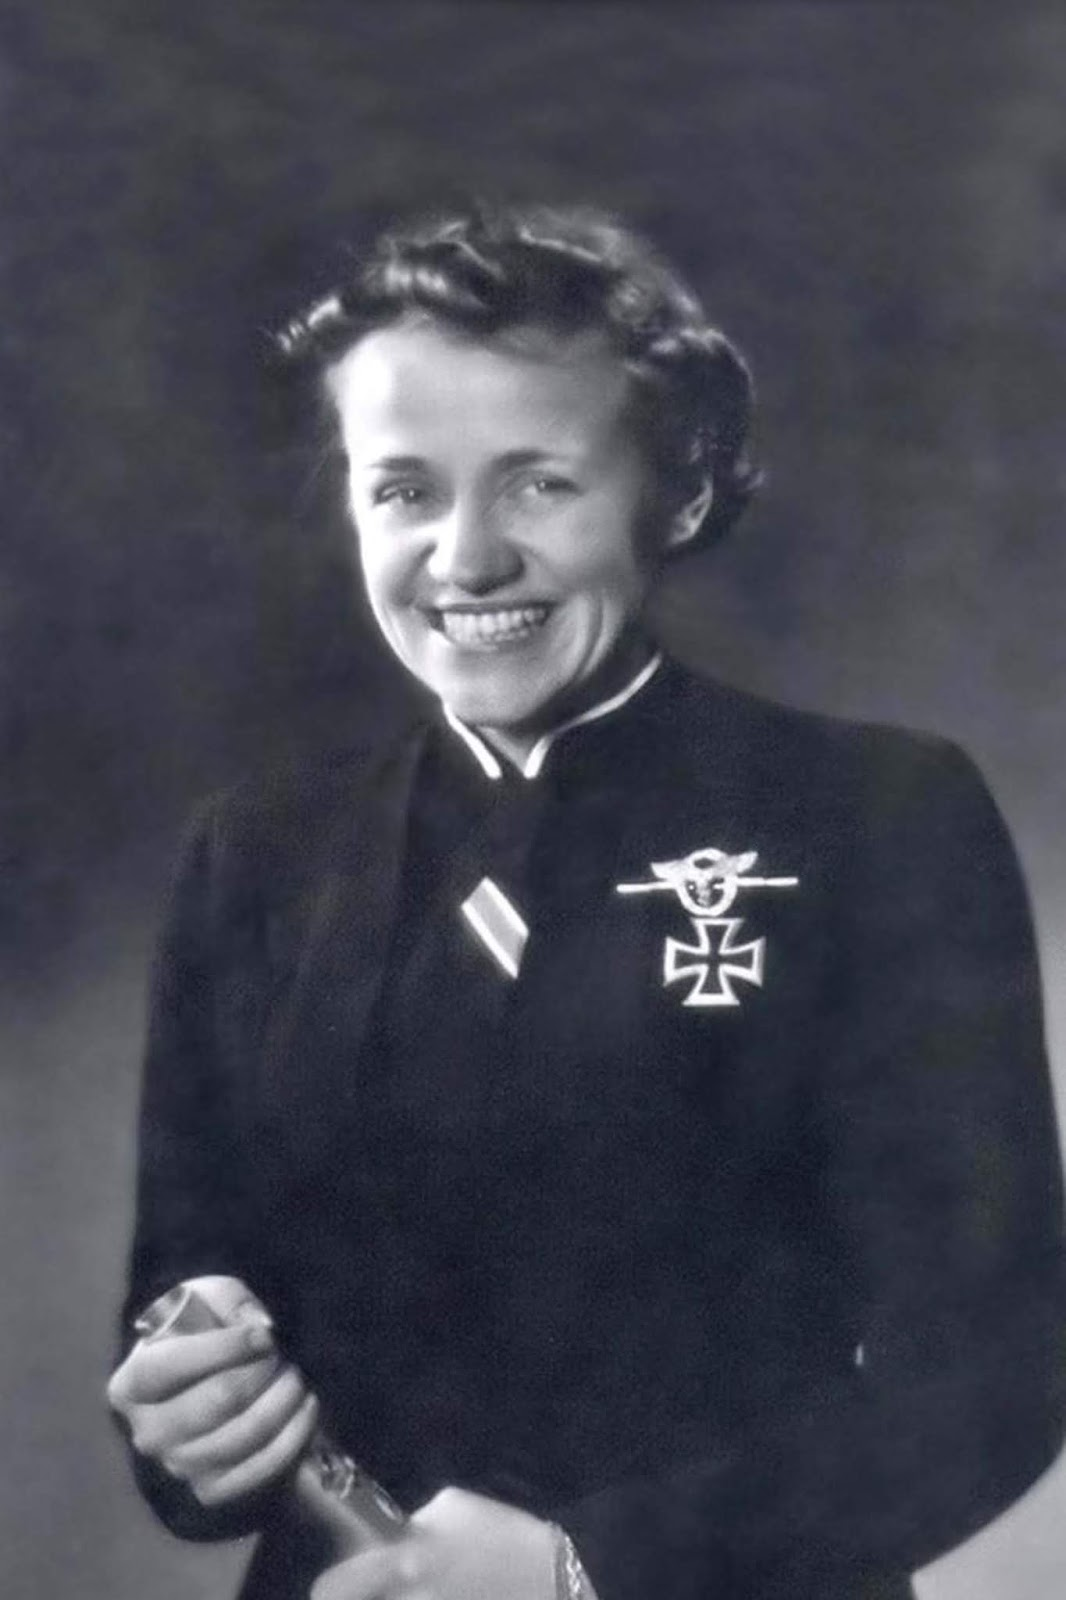 Hanna Reitsch, a famous German test pilot, isn't really wearing anything special, but that 1000-megawatt smile puts her in the high-fashion league all by itself.